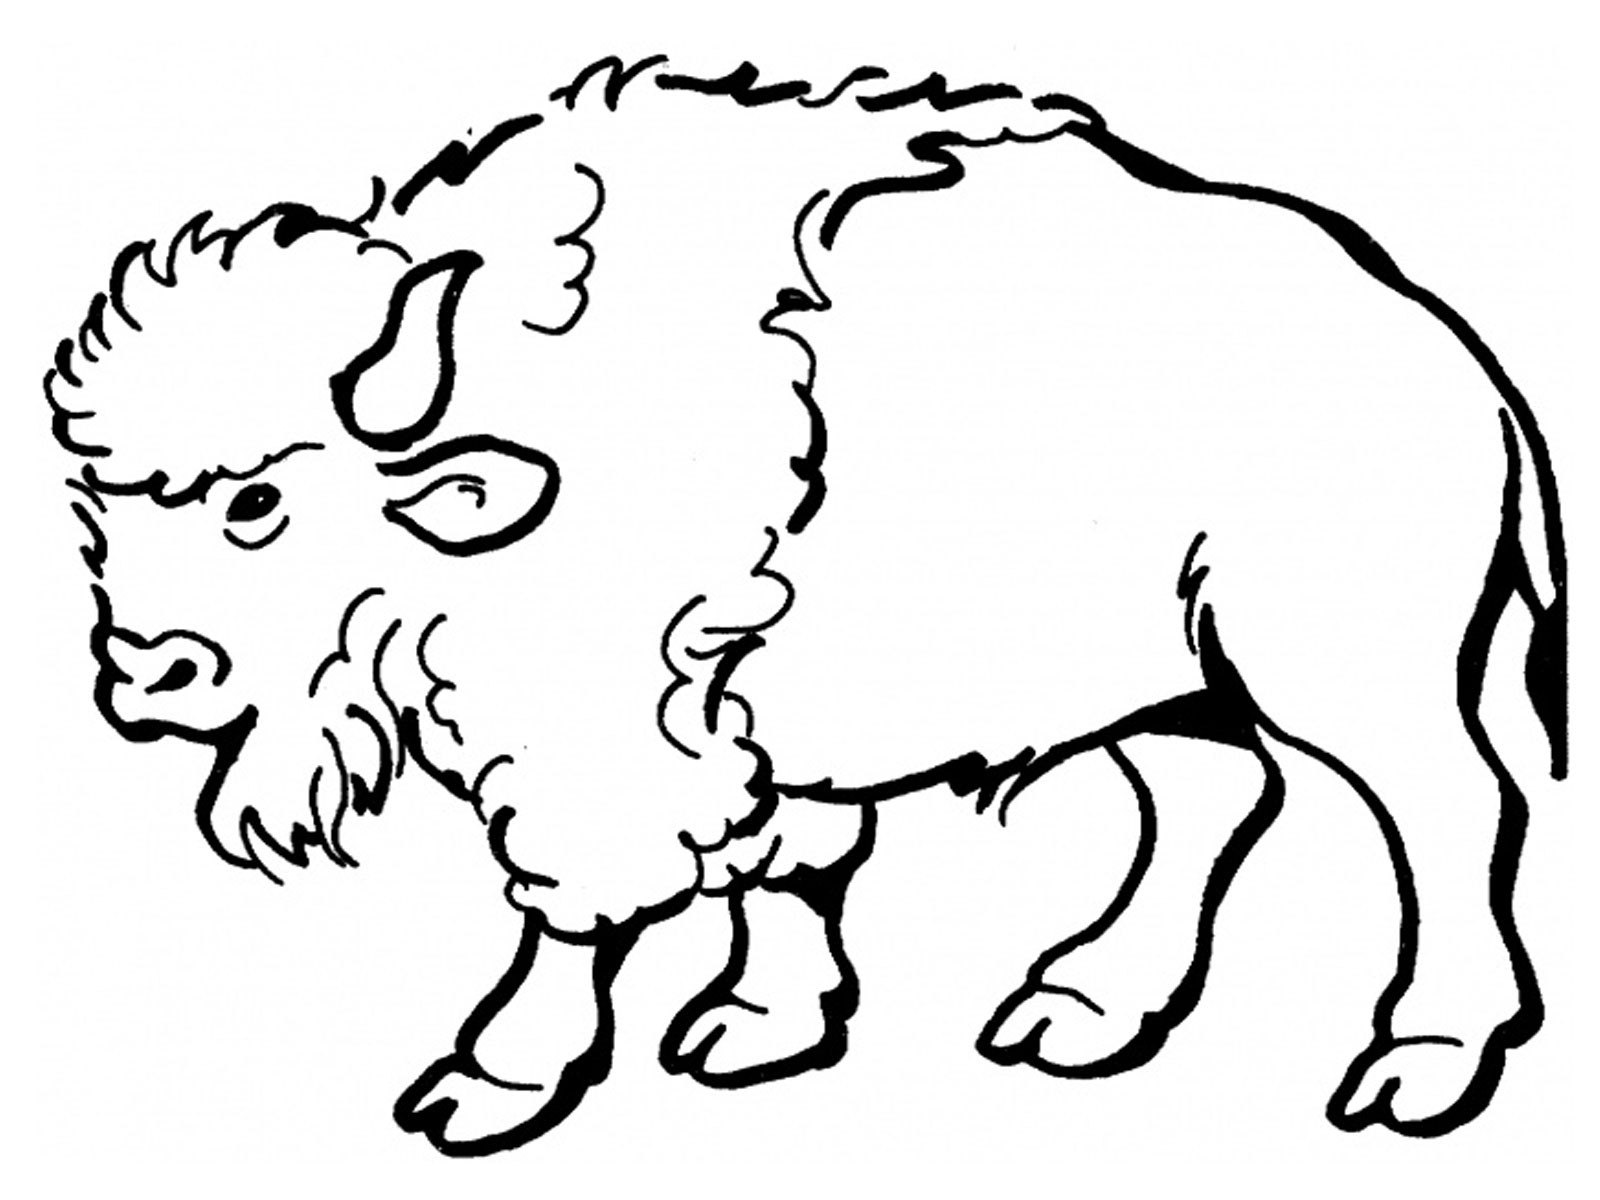 Bison clipart baby bison. Free printable coloring pages